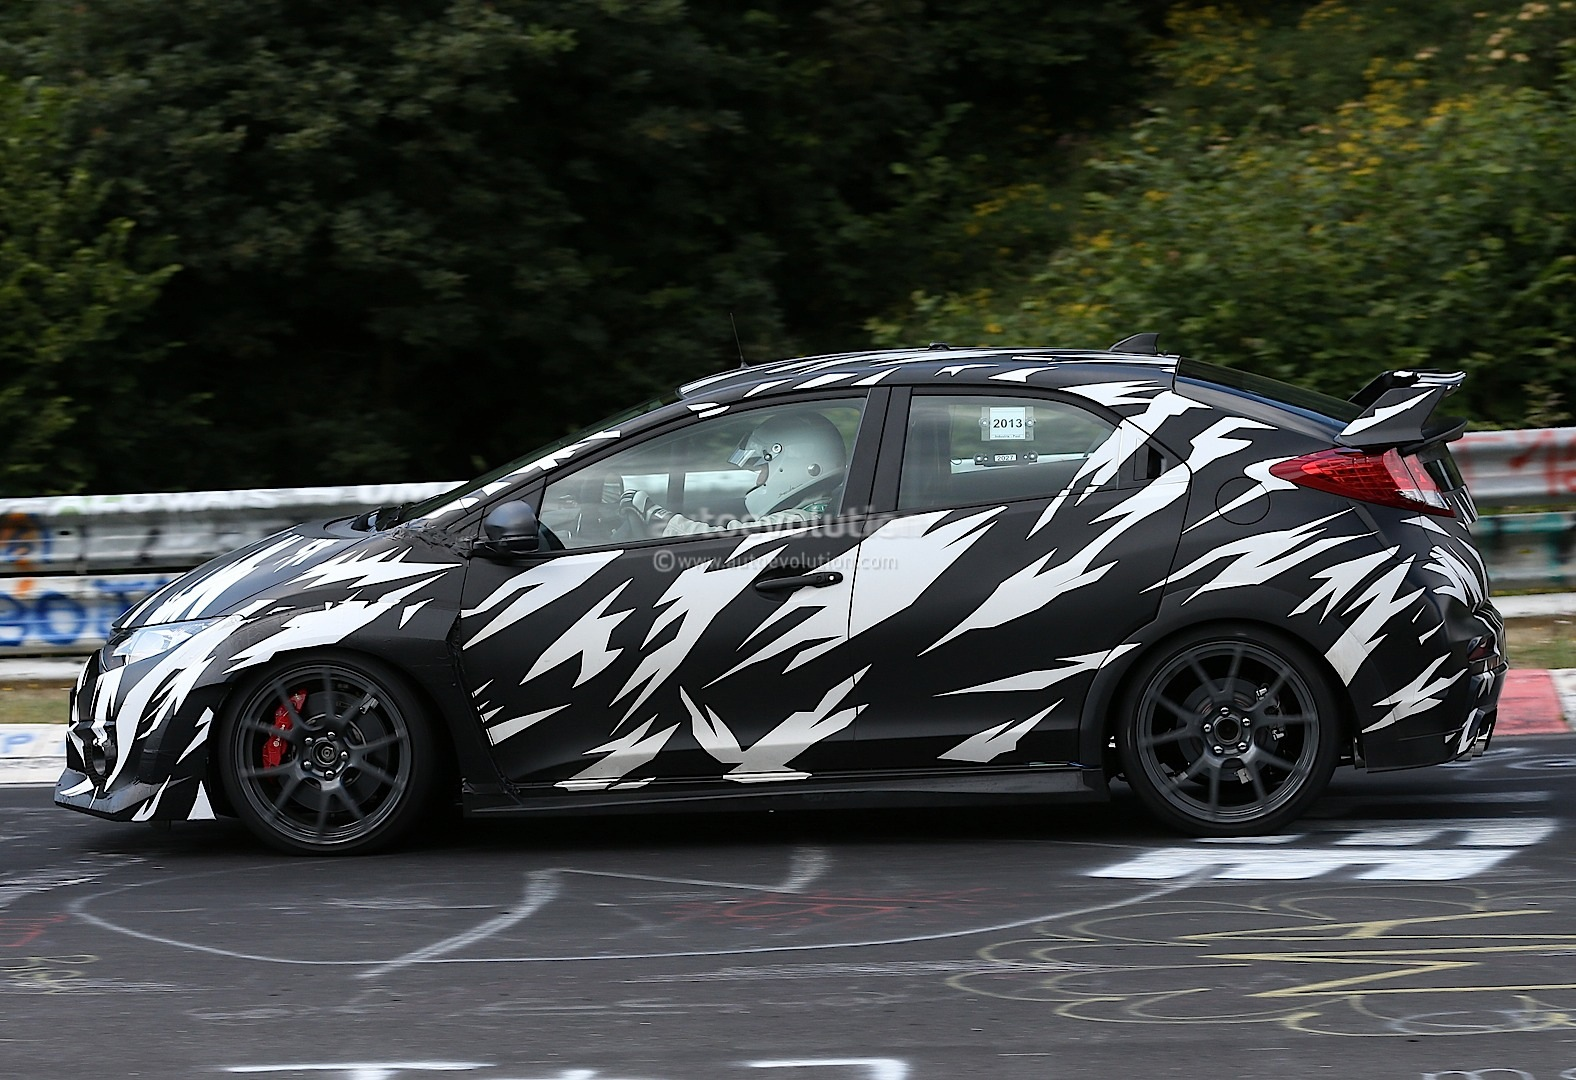 Honda Accord Used >> Spyshots: 2015 Honda Civic Type R Nurburgring Testing - autoevolution